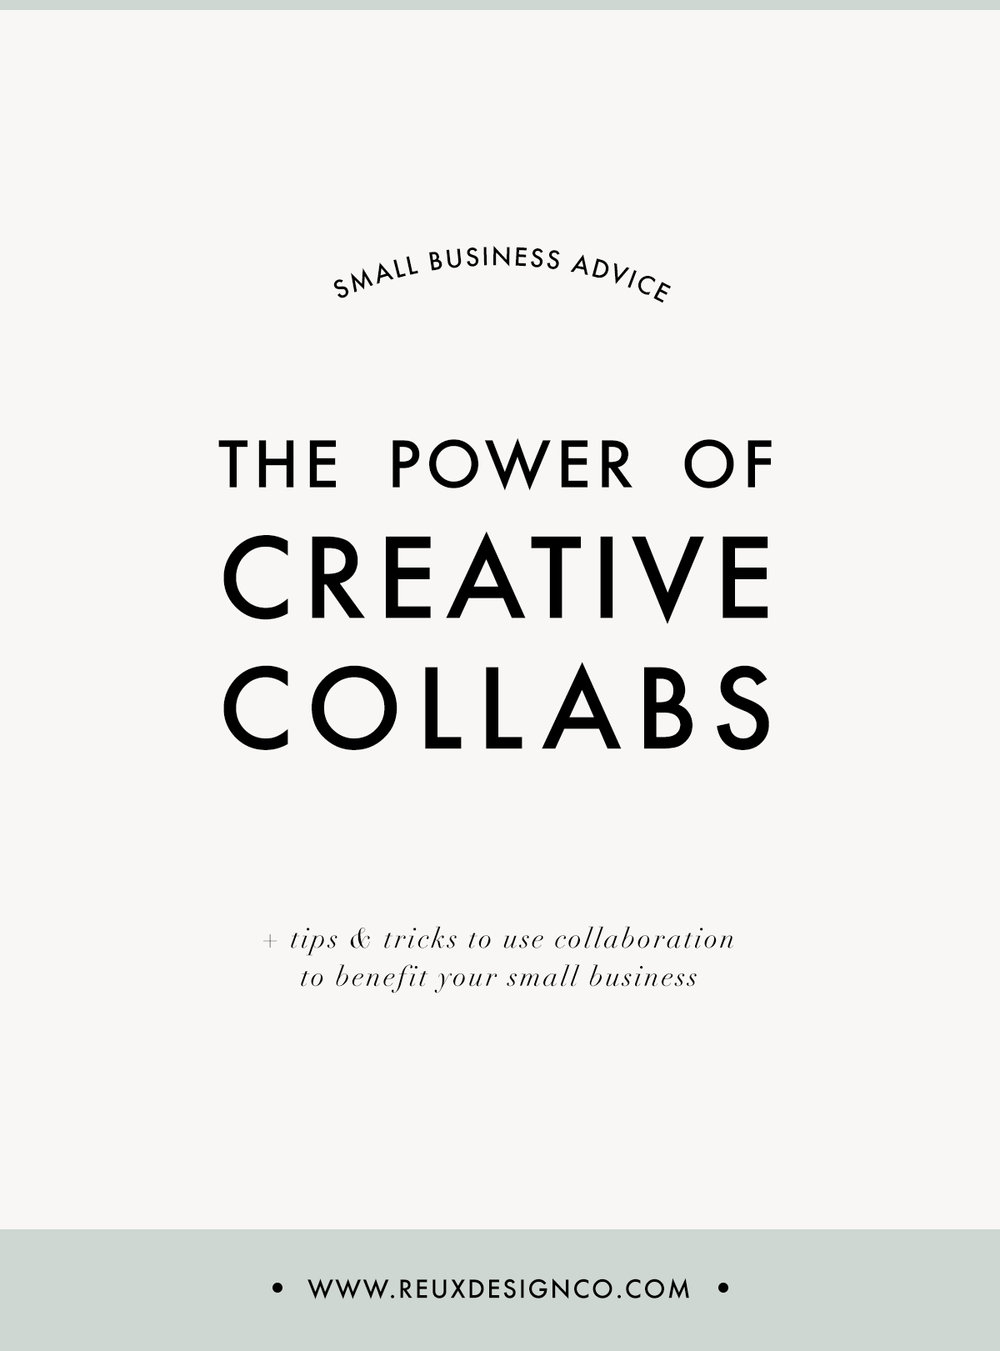 The power of creative collaborations to grow your small business | Reux Design Co.